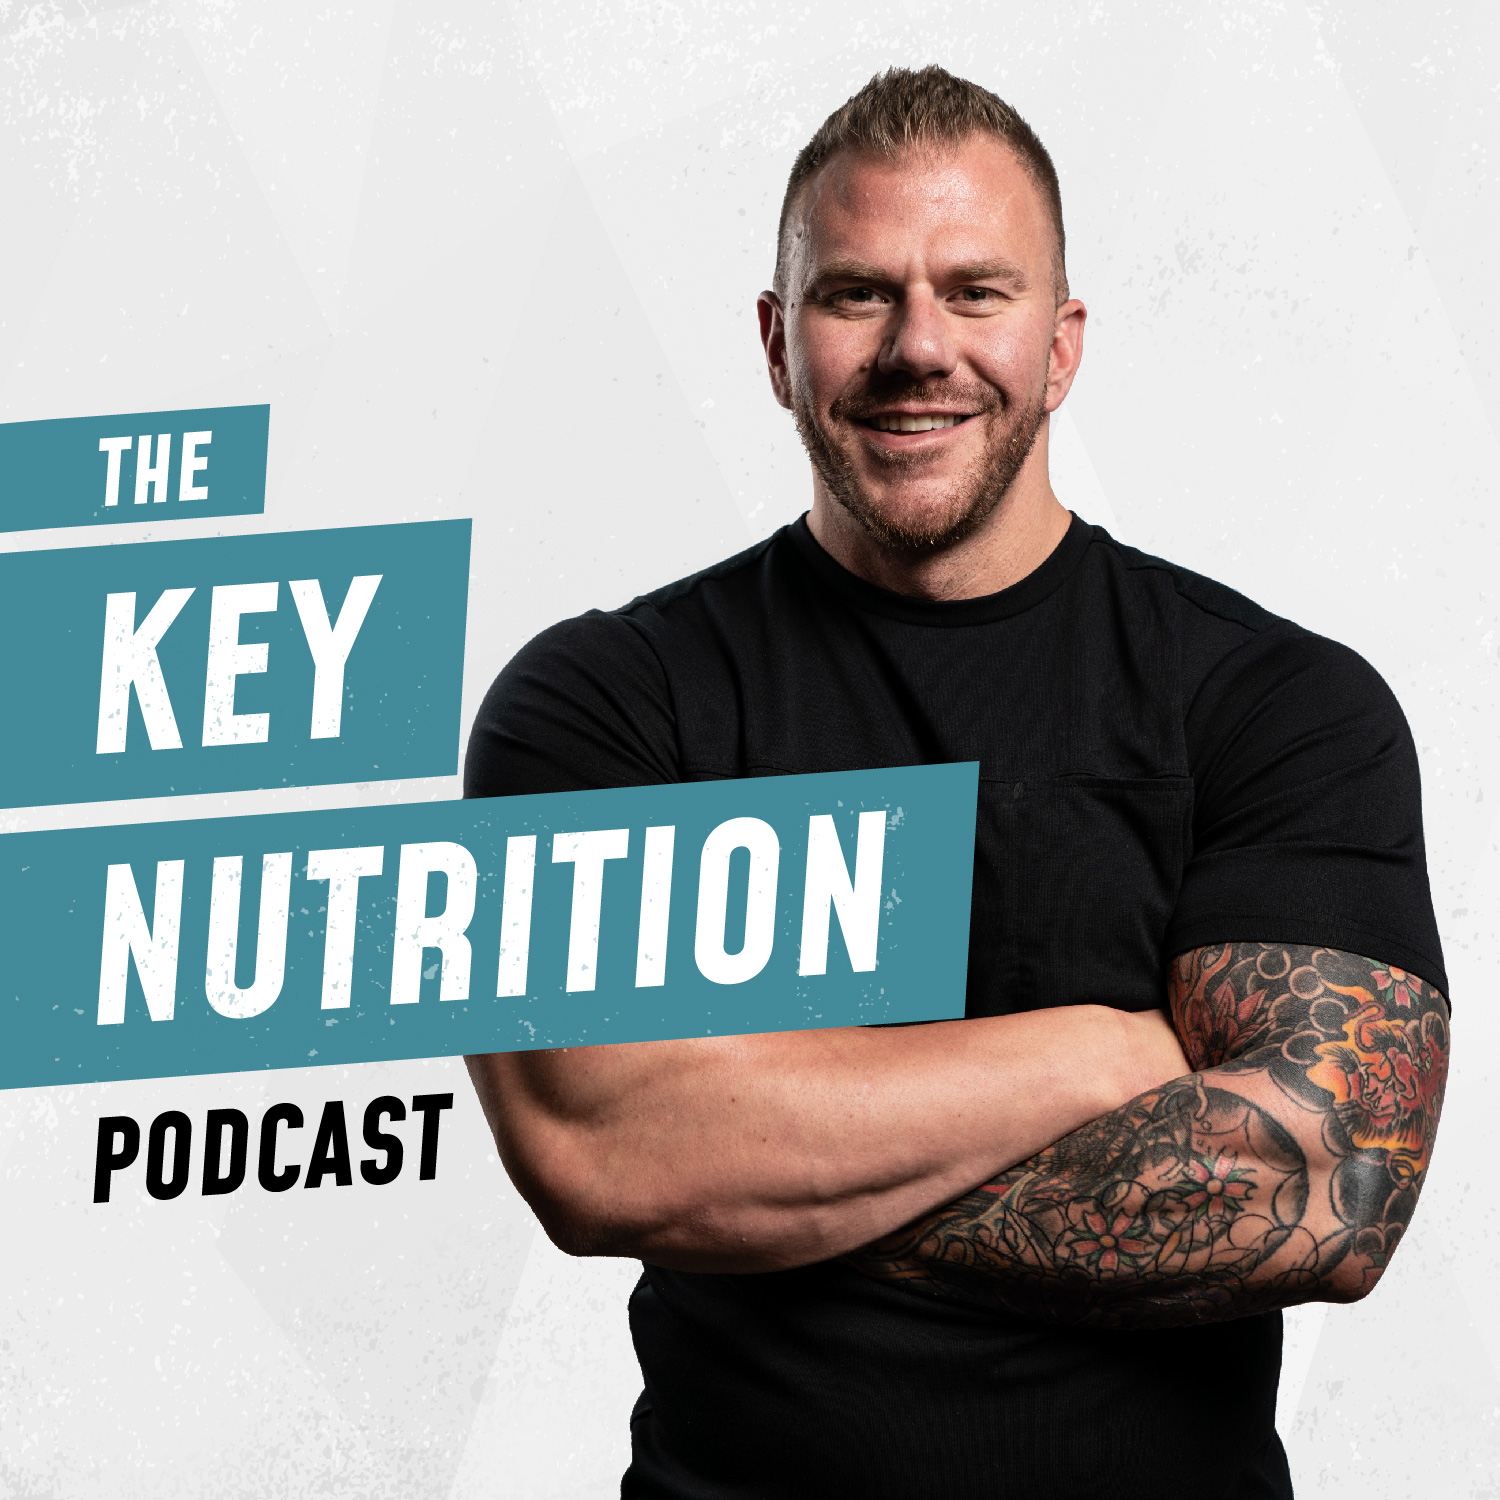 KNP35 – Mental Health a Taboo Subject – The Key Nutrition